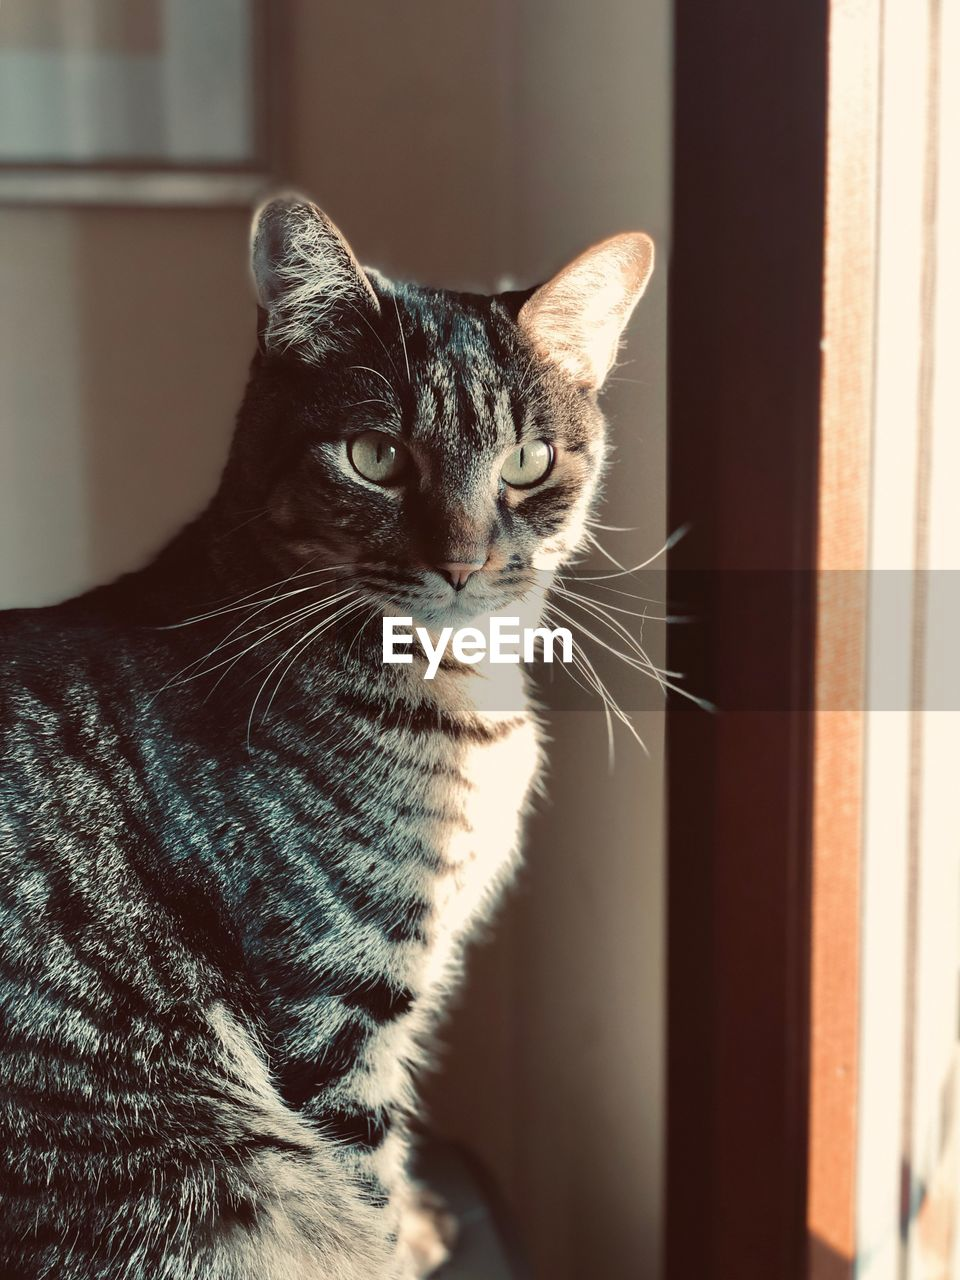 domestic, domestic cat, pets, cat, domestic animals, feline, mammal, animal themes, animal, one animal, vertebrate, indoors, no people, whisker, looking, focus on foreground, home interior, close-up, window, looking away, tabby, animal eye